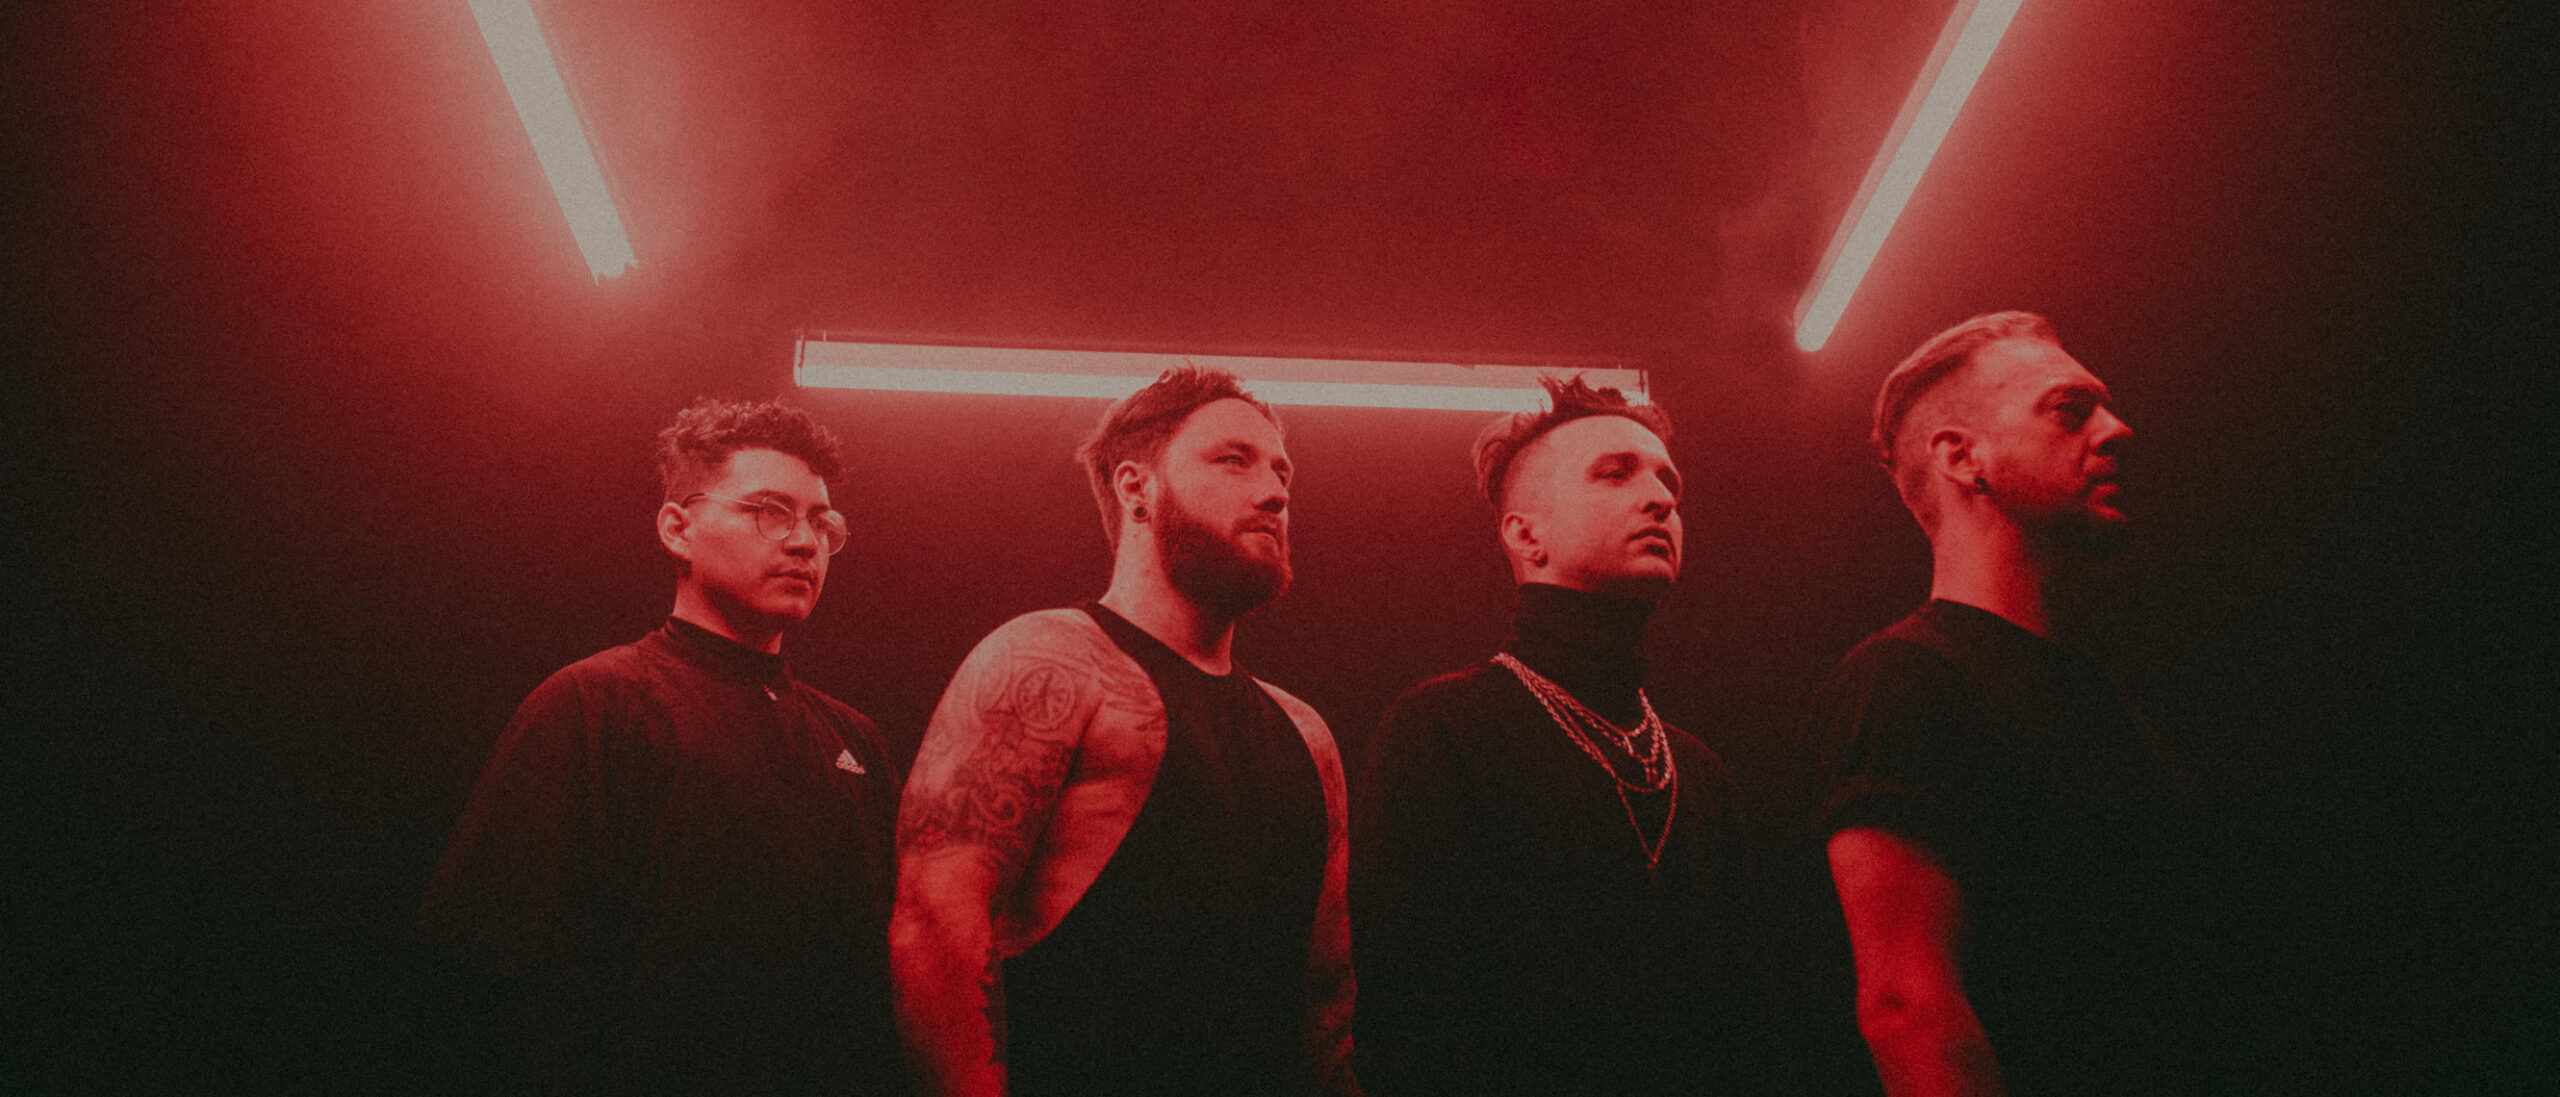 """CONVICTIONS RELEASE NEW SINGLE """"THE WAR THAT FOLLOWED ME HOME"""" + ANNOUNCE NEW EP 'I WON'T SURVIVE'"""